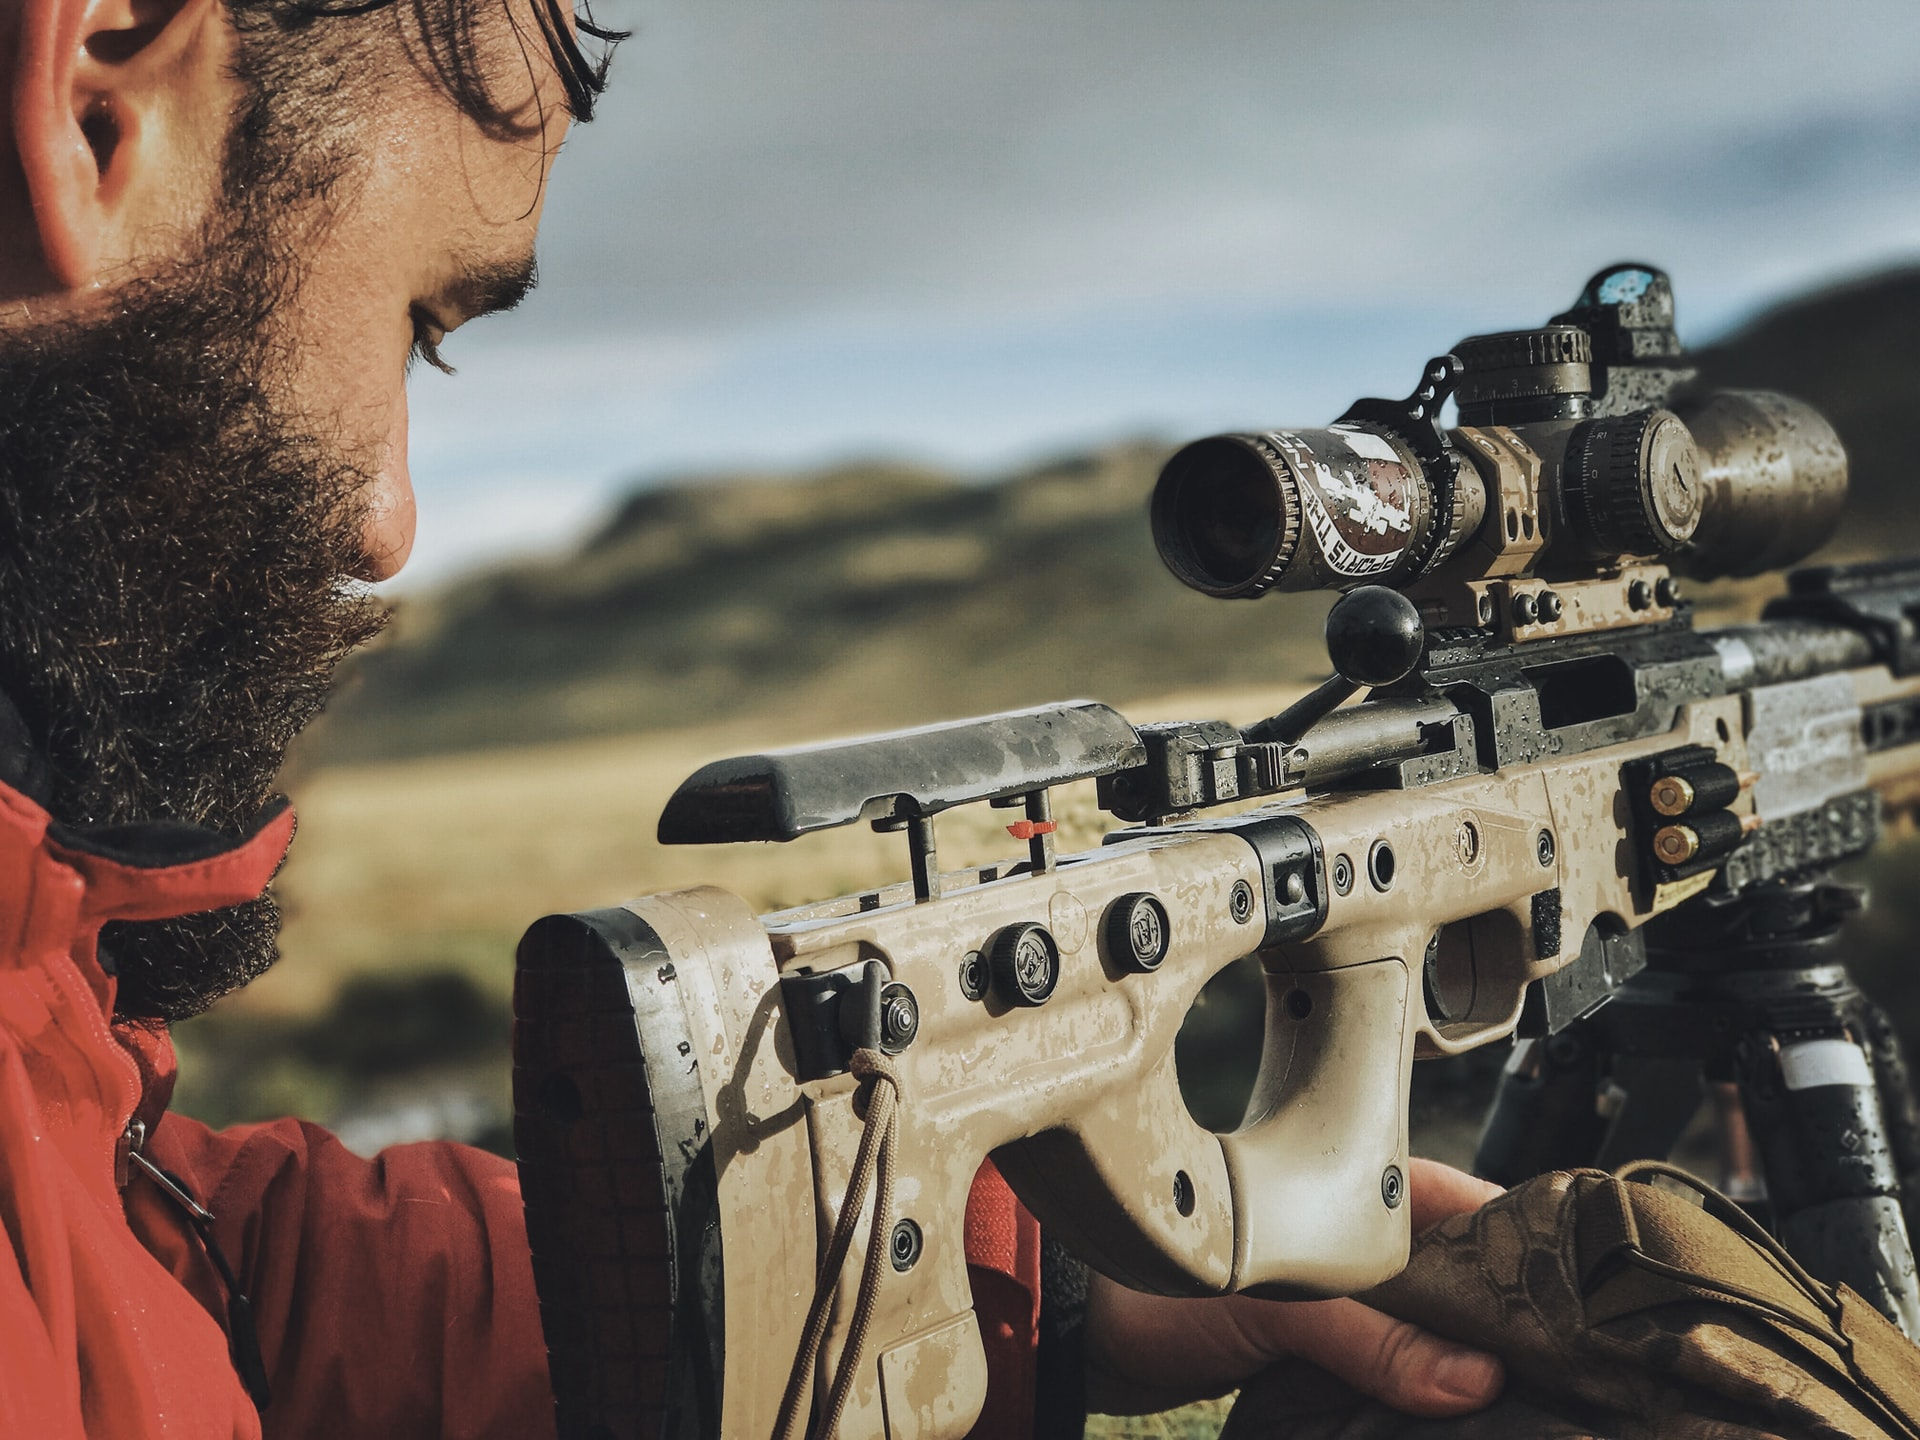 Recoil: One of the most critical aspects of choosing a rifle